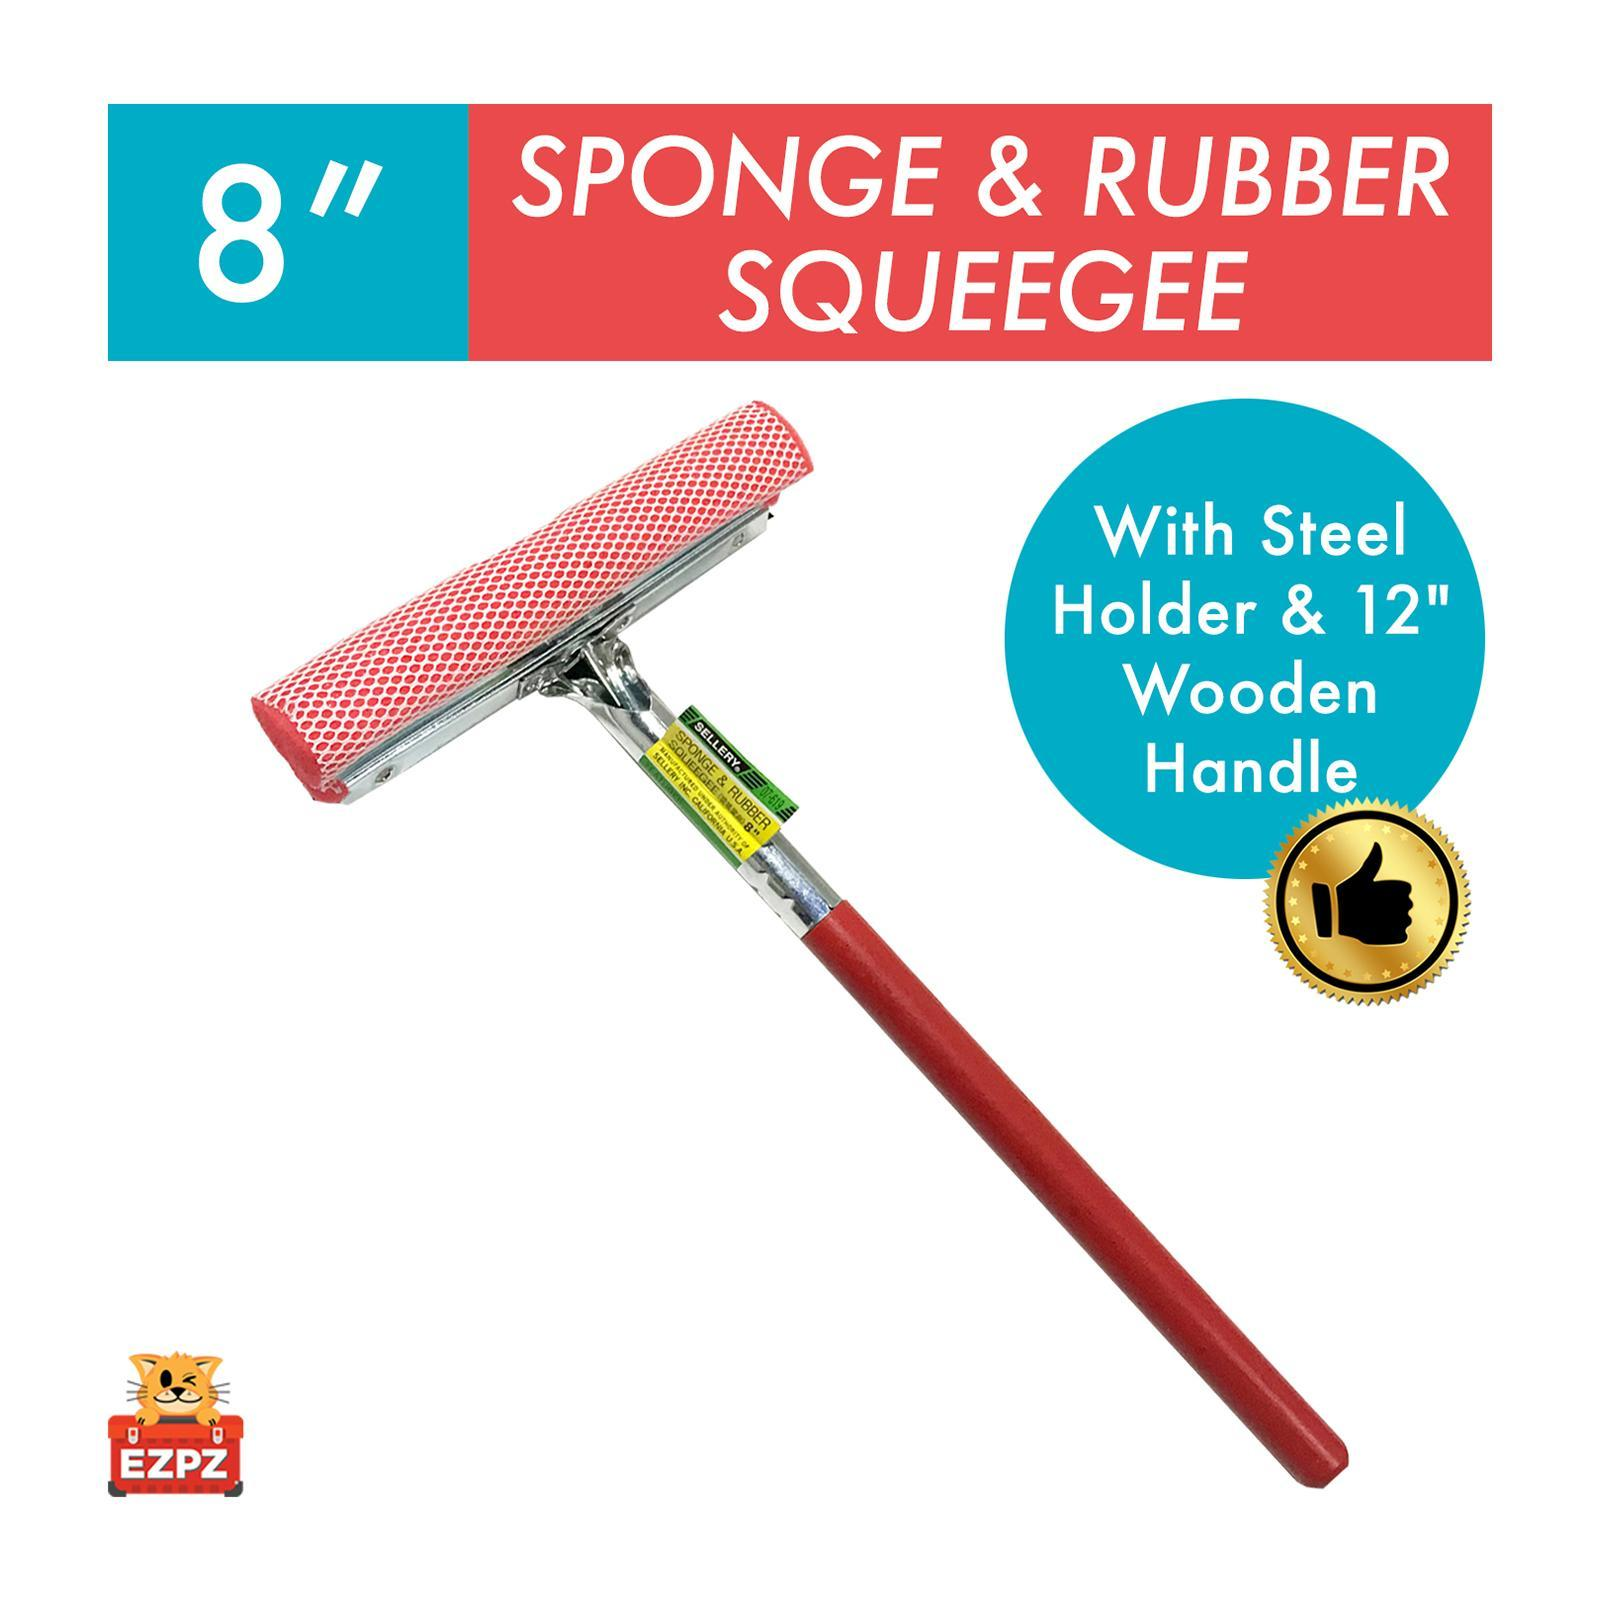 Sellery Sponge And Rubber Squeegee 8 /200Mm (With Steel Holder And 12 Wooden Handle)